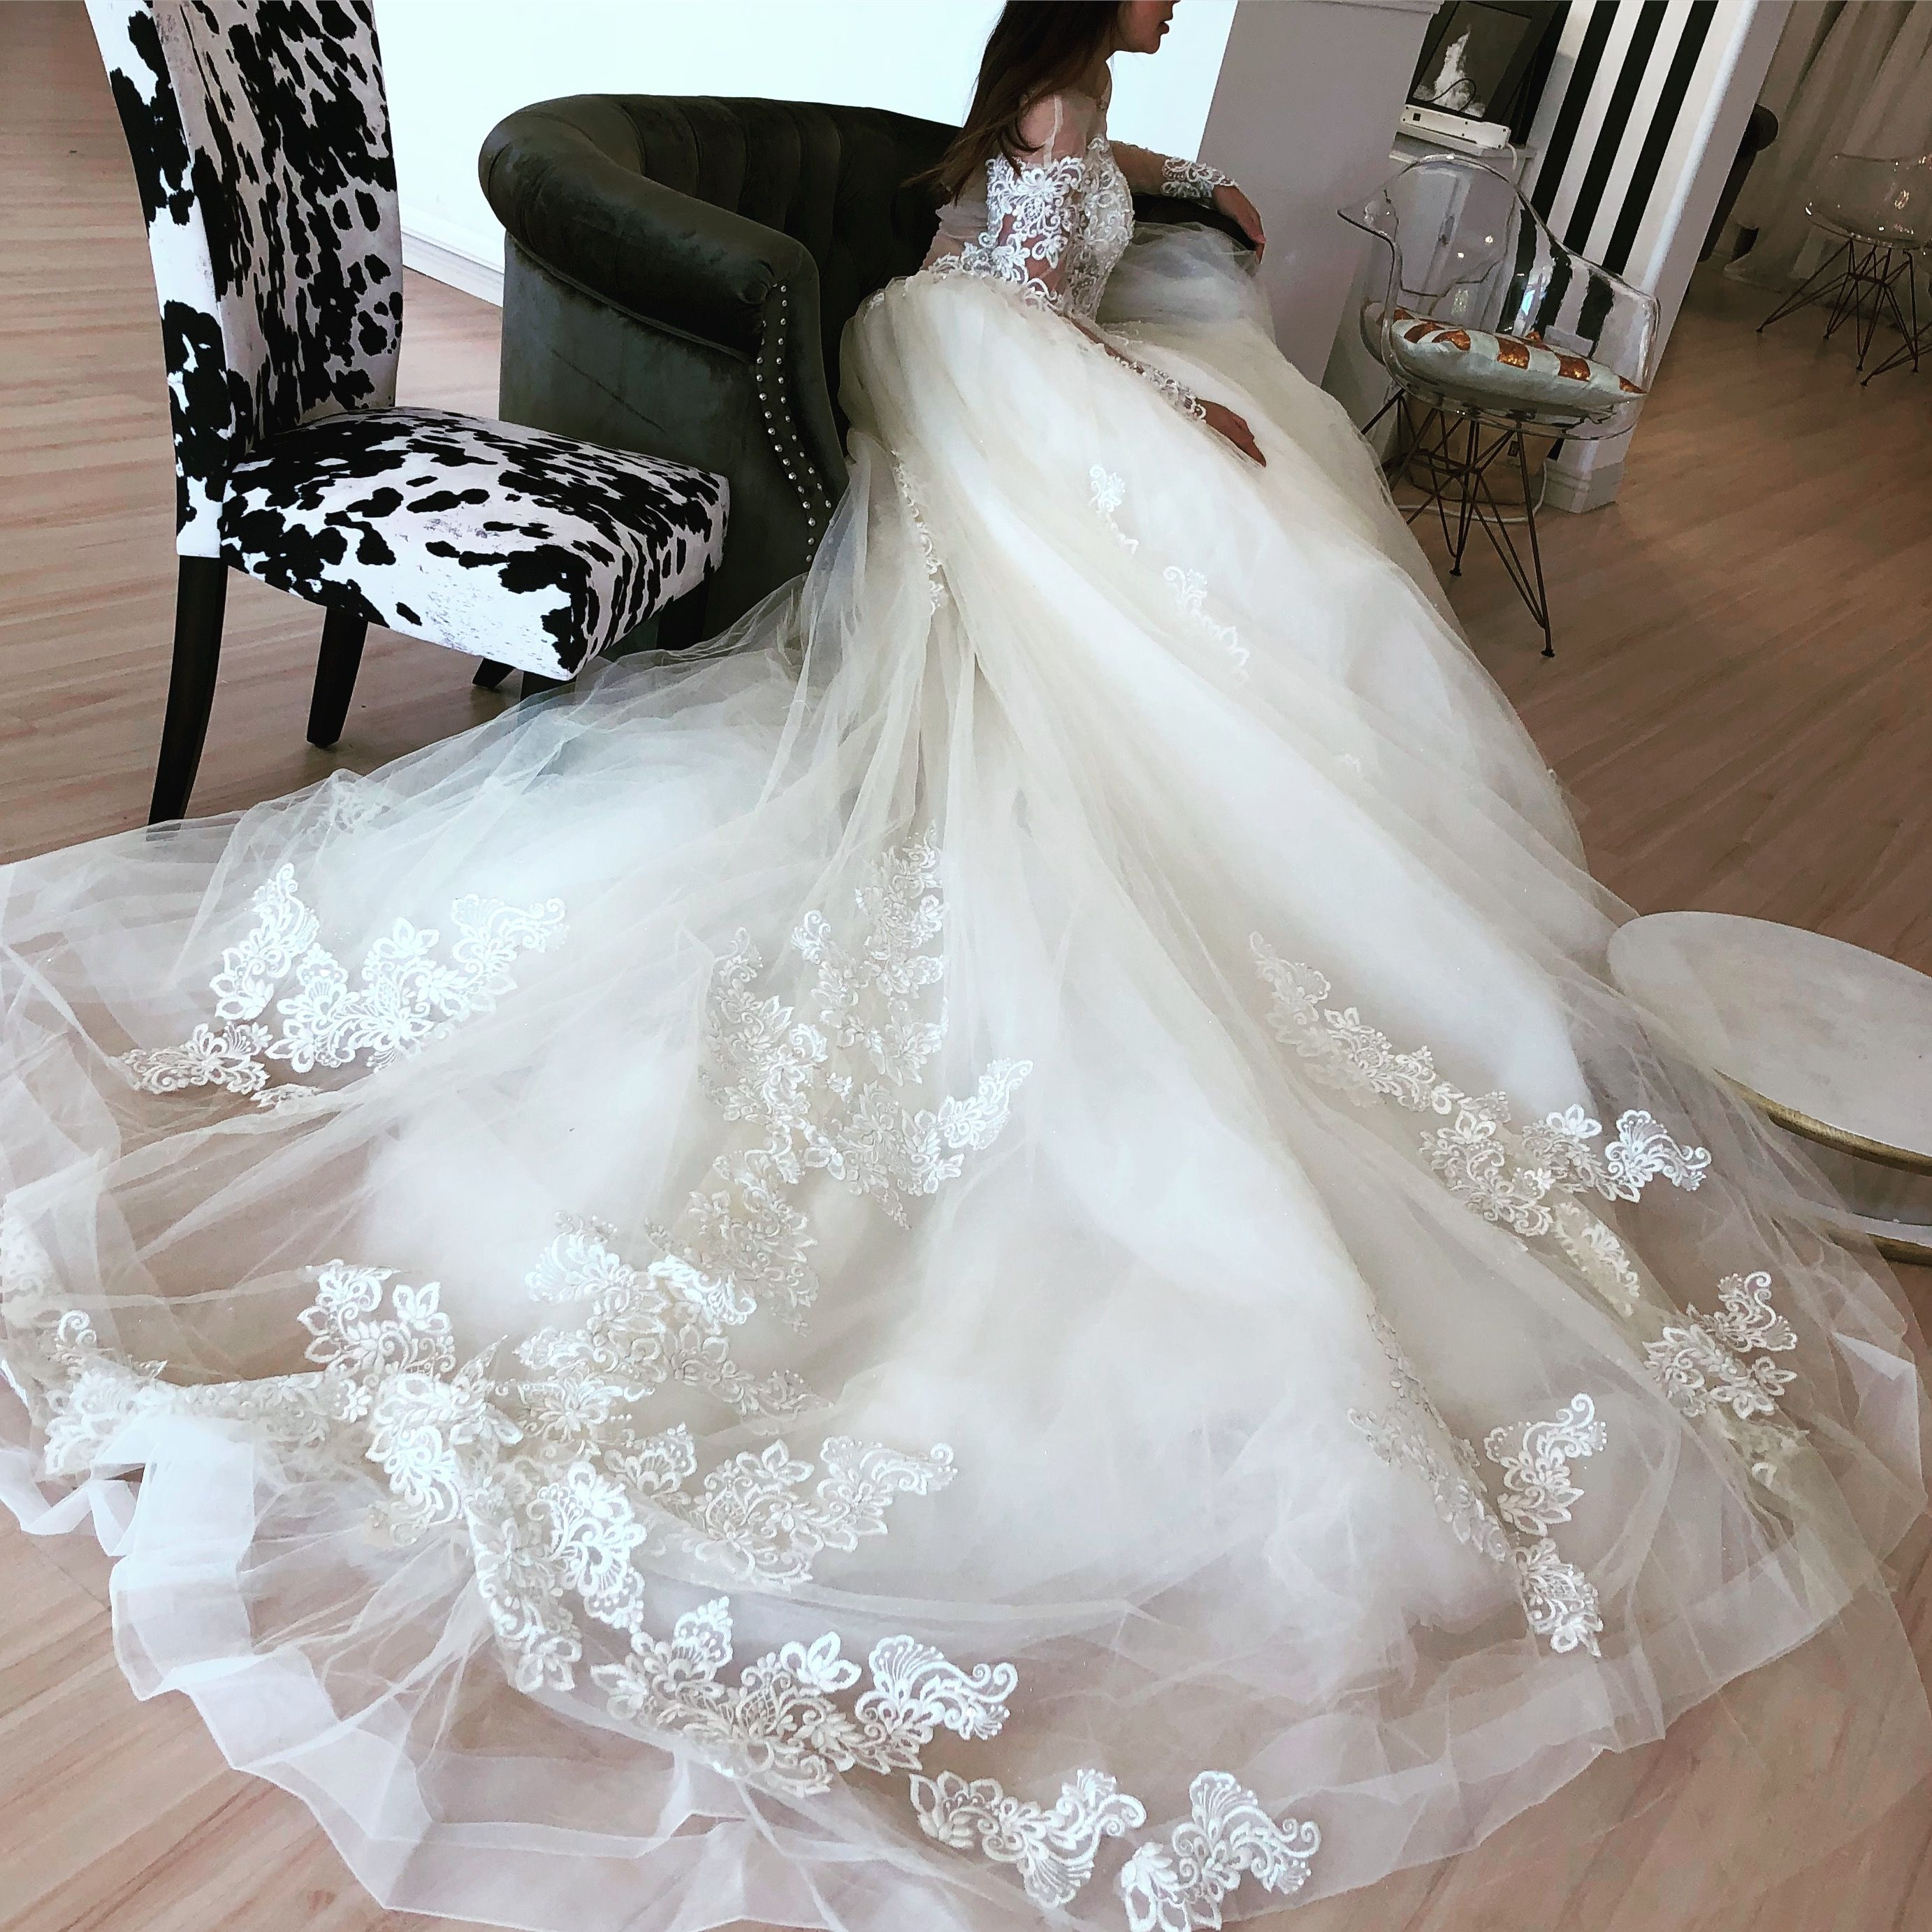 Wedding dress | Vivienne Atelier Los Angeles Bridal Shop for ...